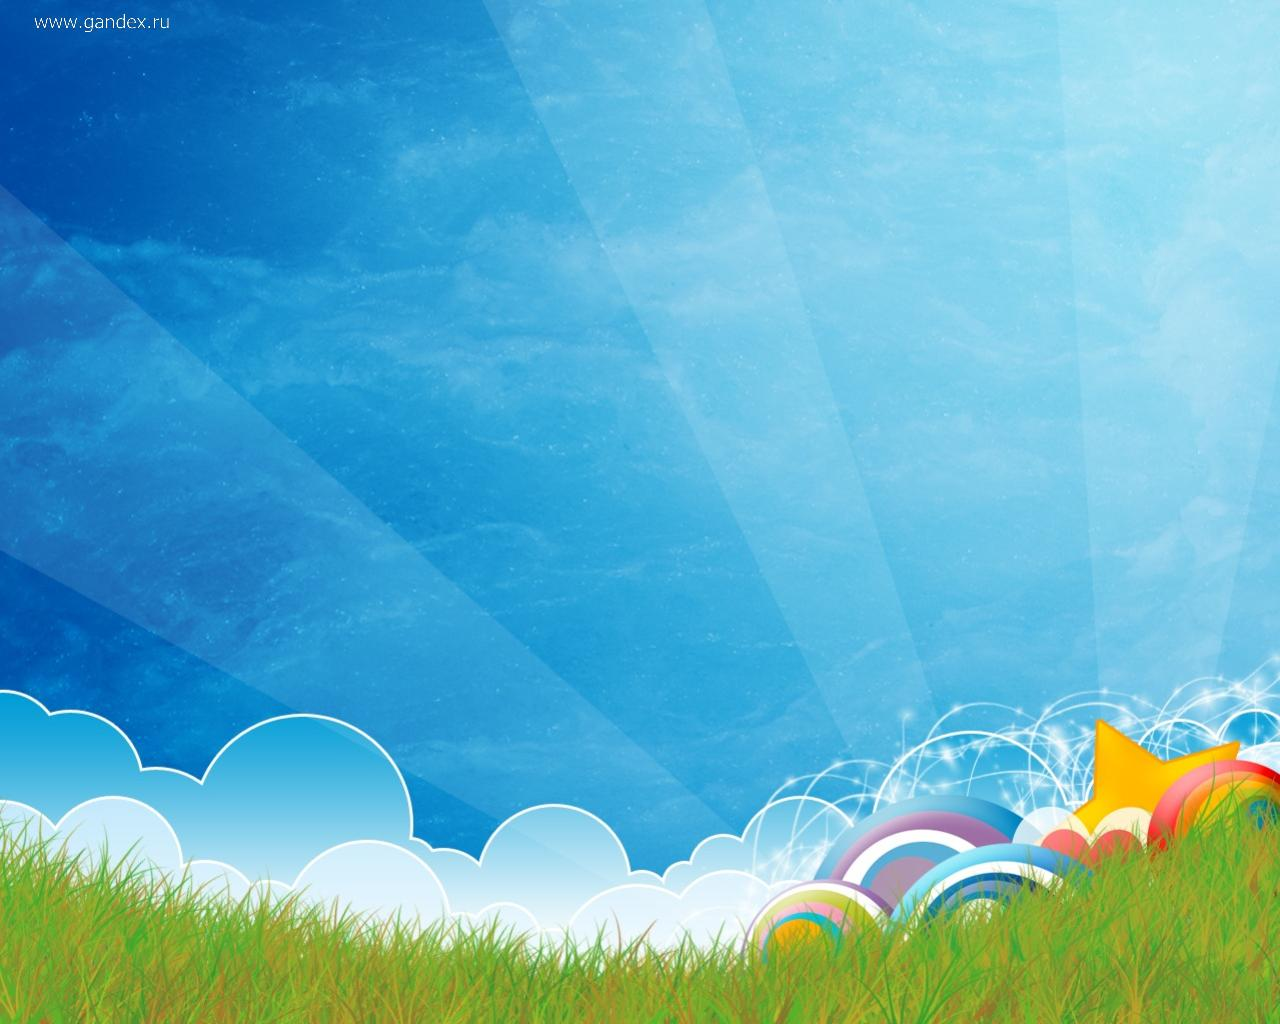 Bright vector image - sky, grass and a variety of shapes.